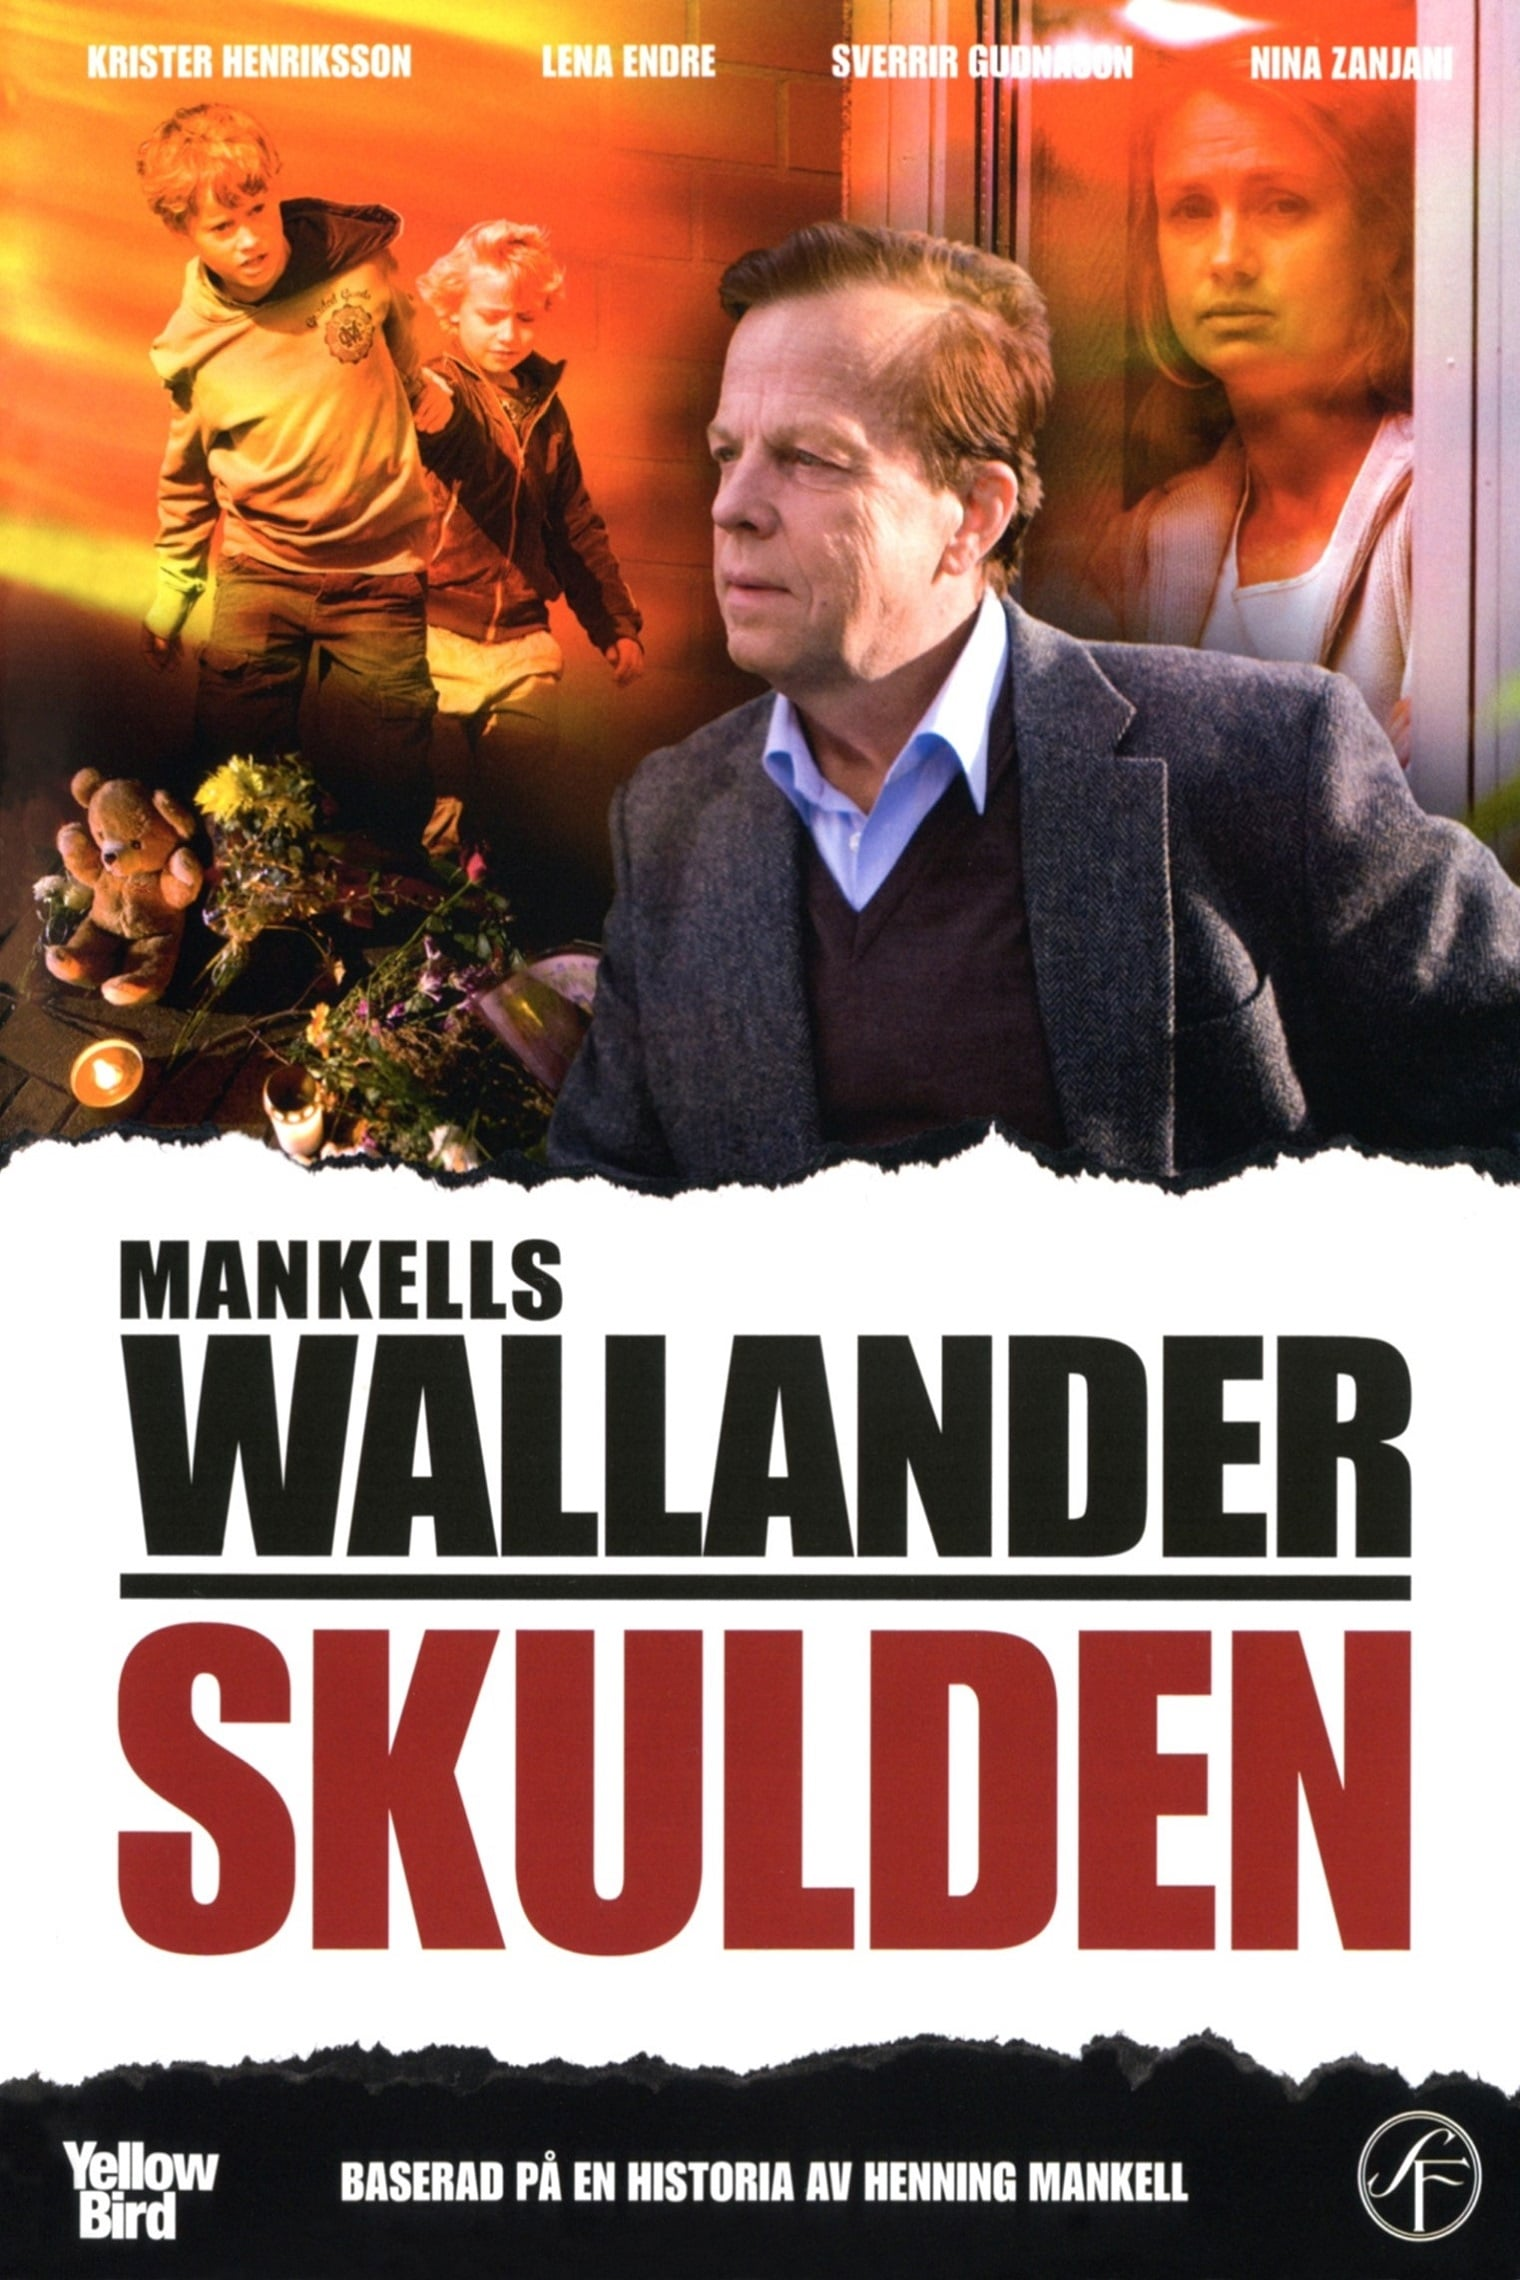 Wallander 15 - Skulden (2009)